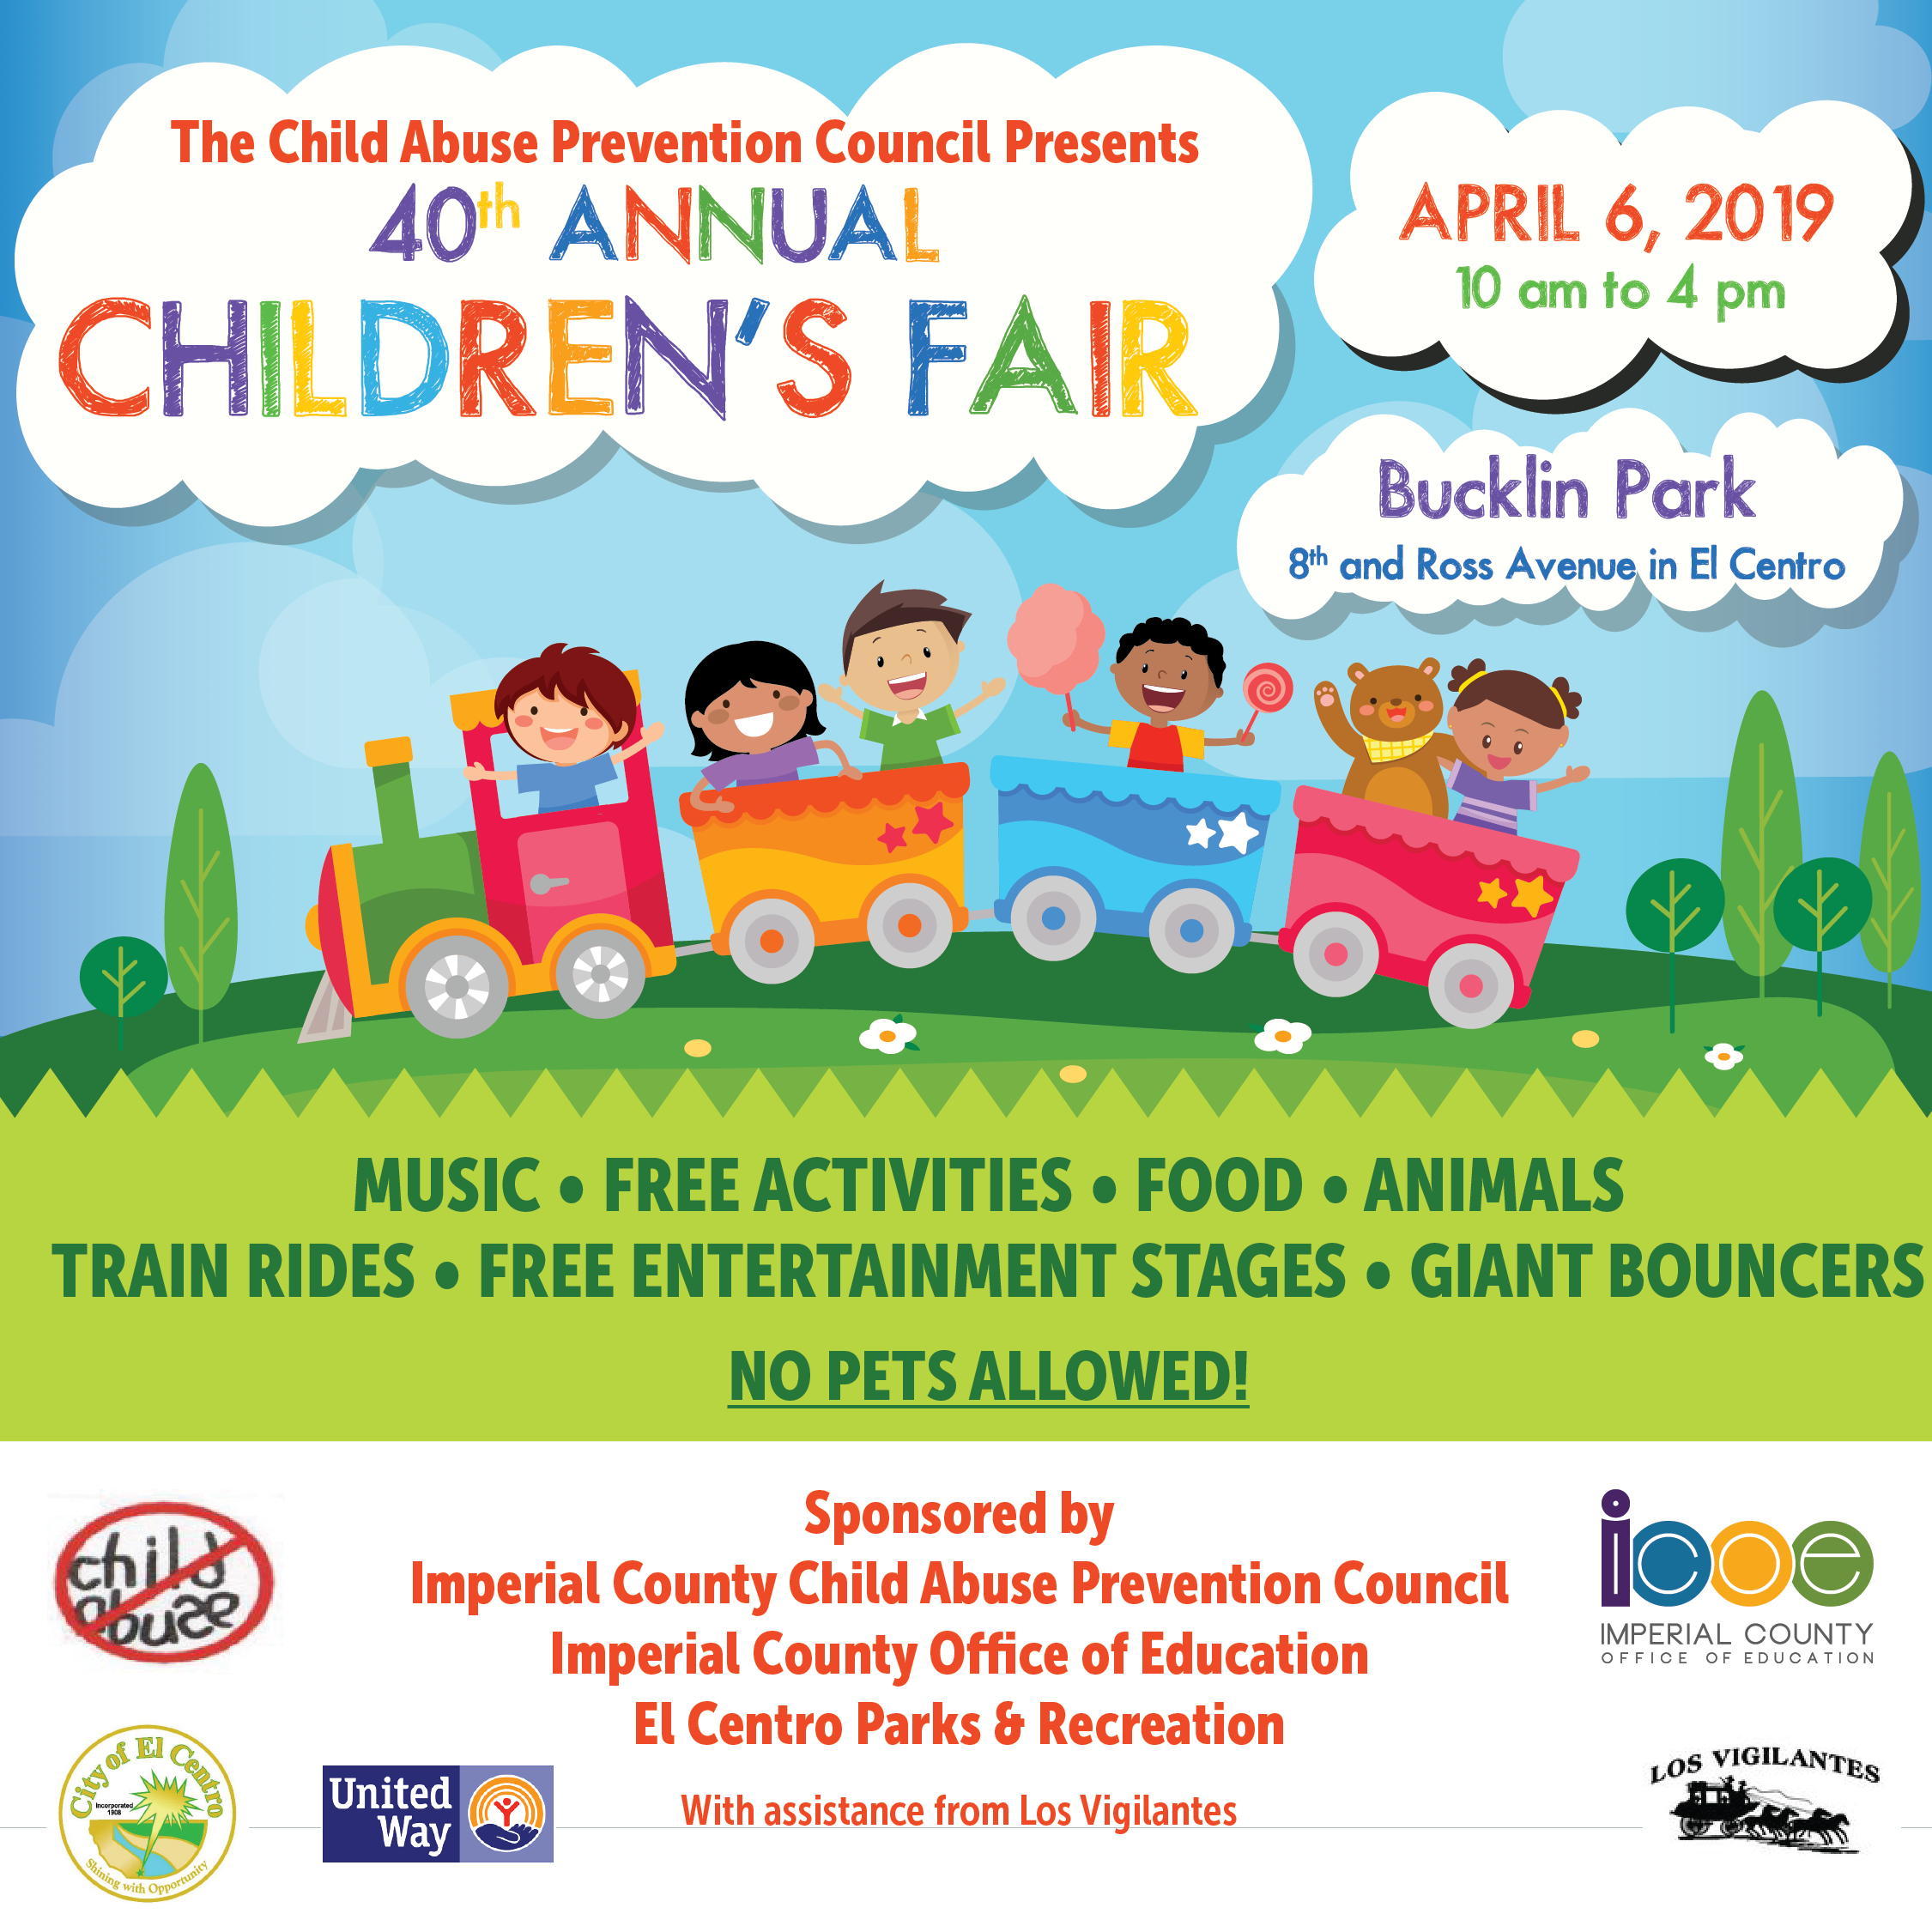 Children's Fair